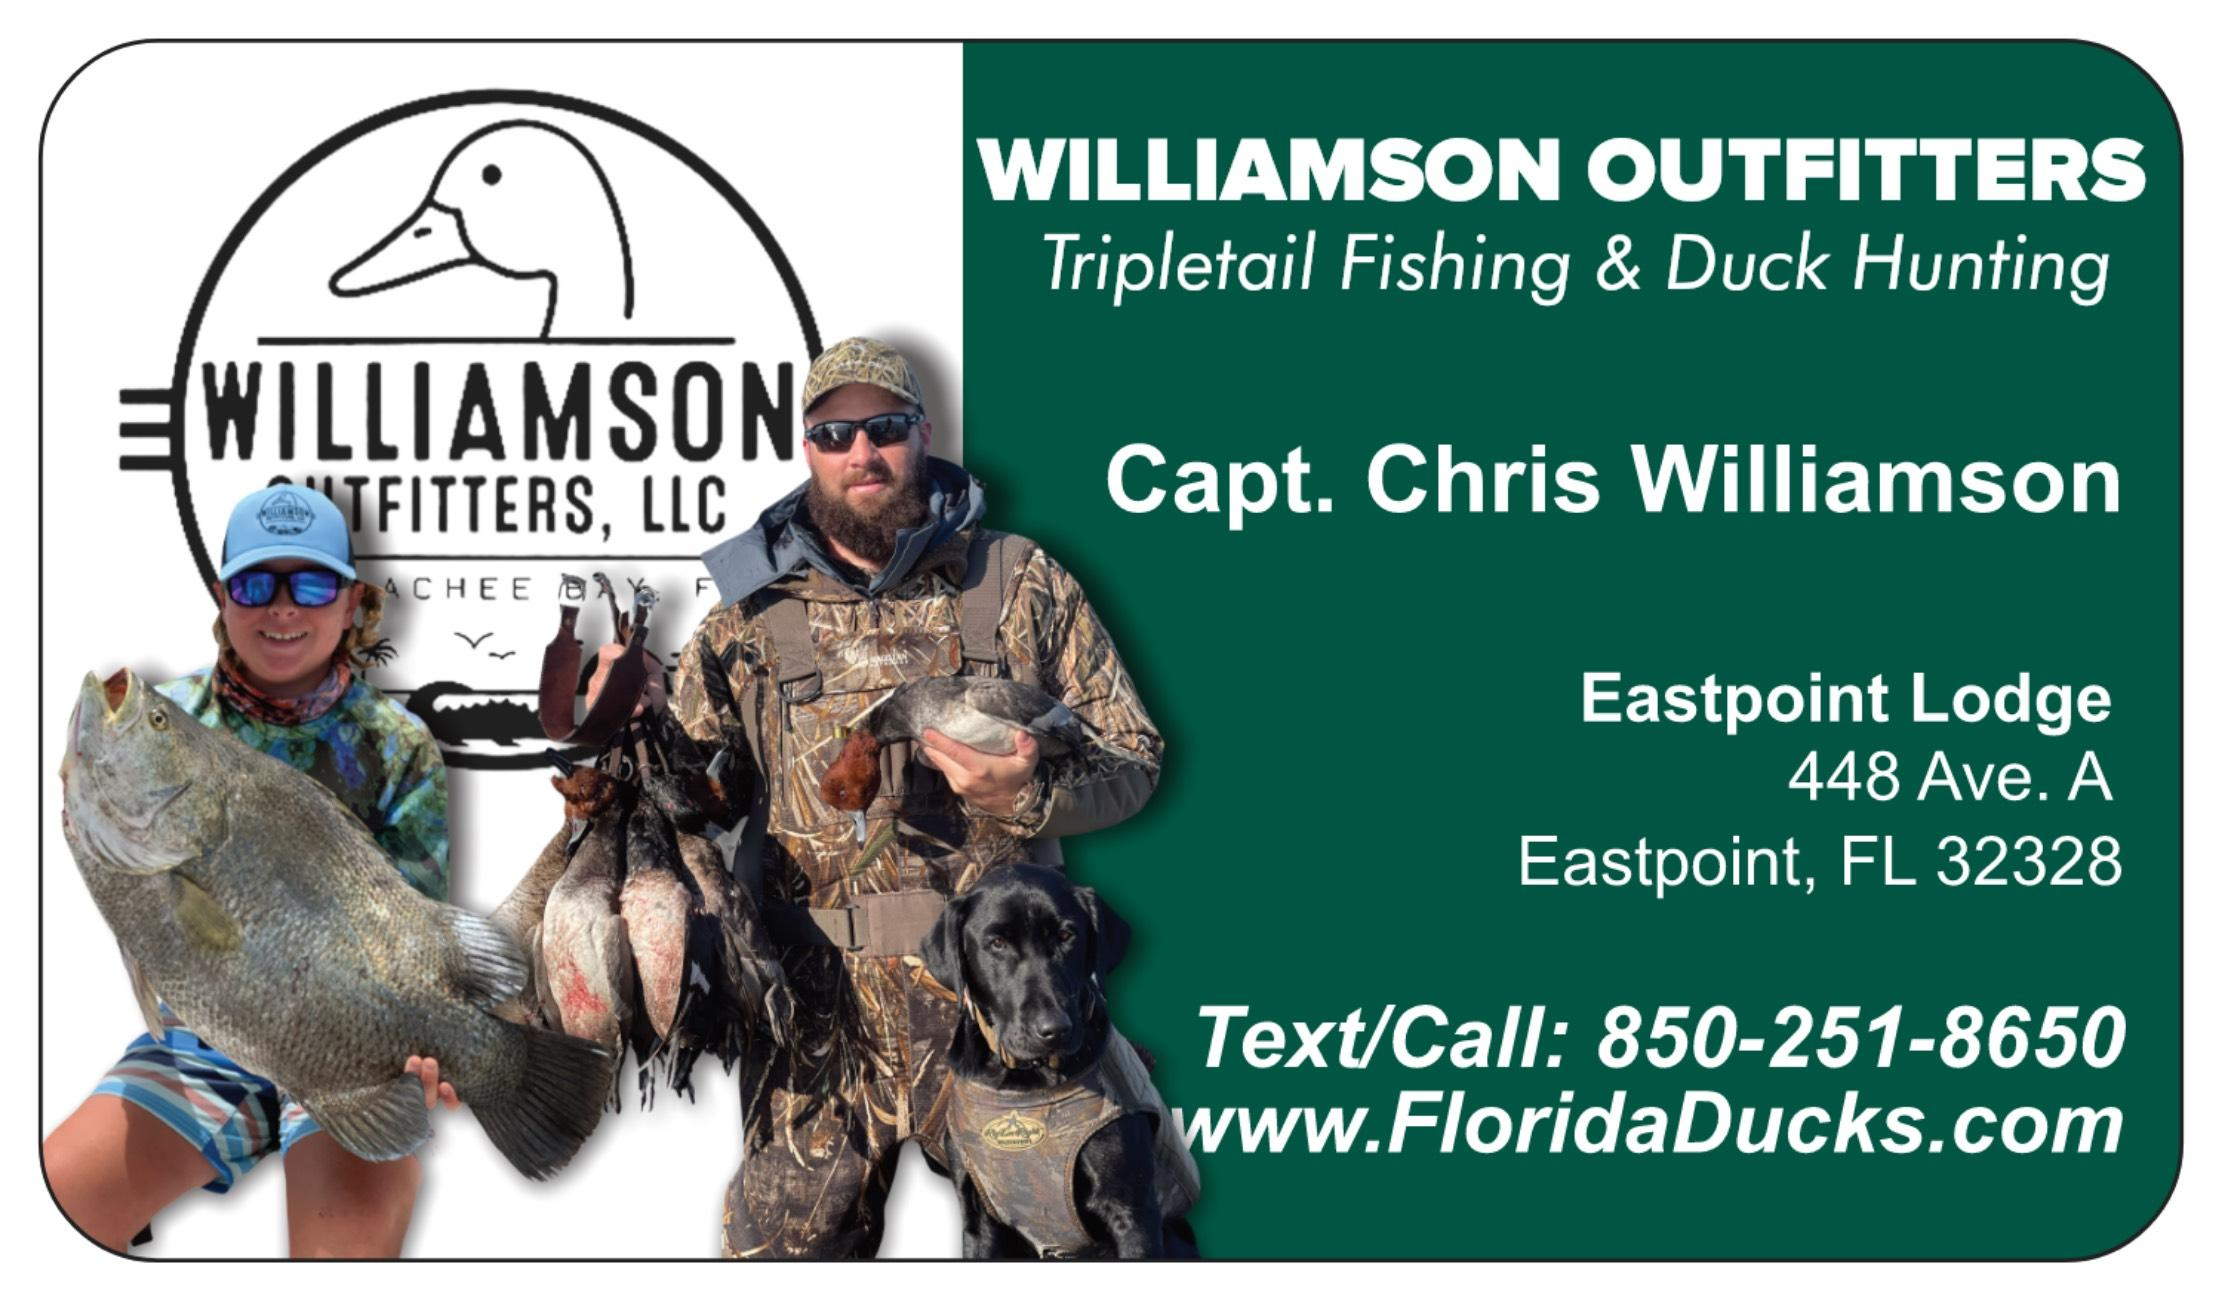 Williamson Outfitters, LLC